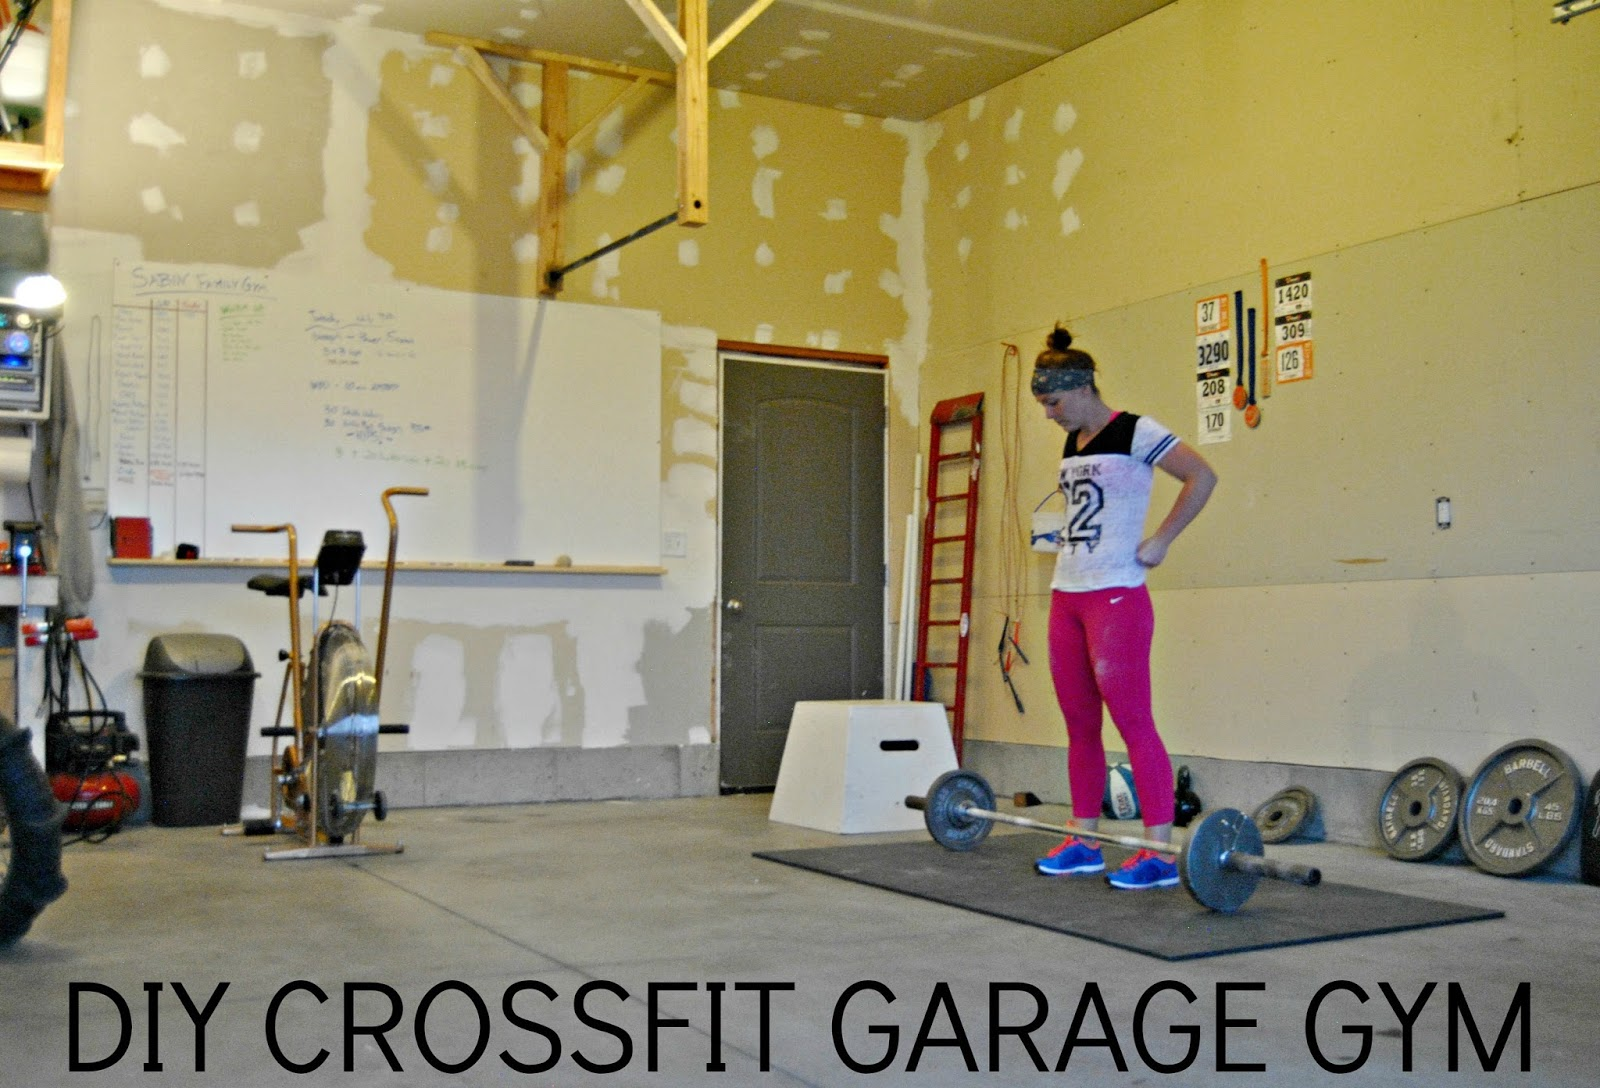 Diy Garage Gym Equipment Diy Crossfit Garage Gym Part 1